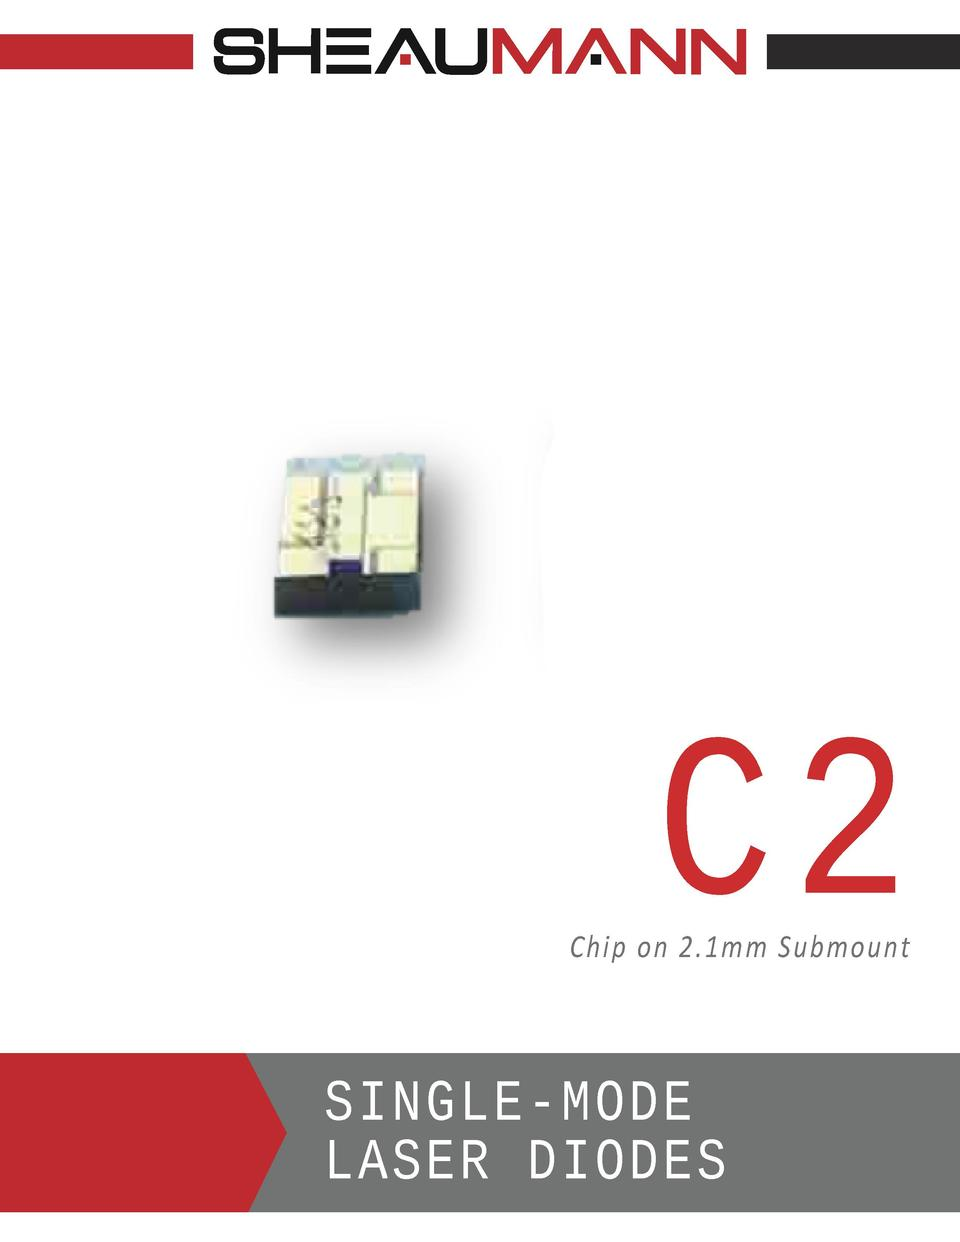 C2  Chip on 2.1mm Submount  SINGLE-MODE LASER DIODES